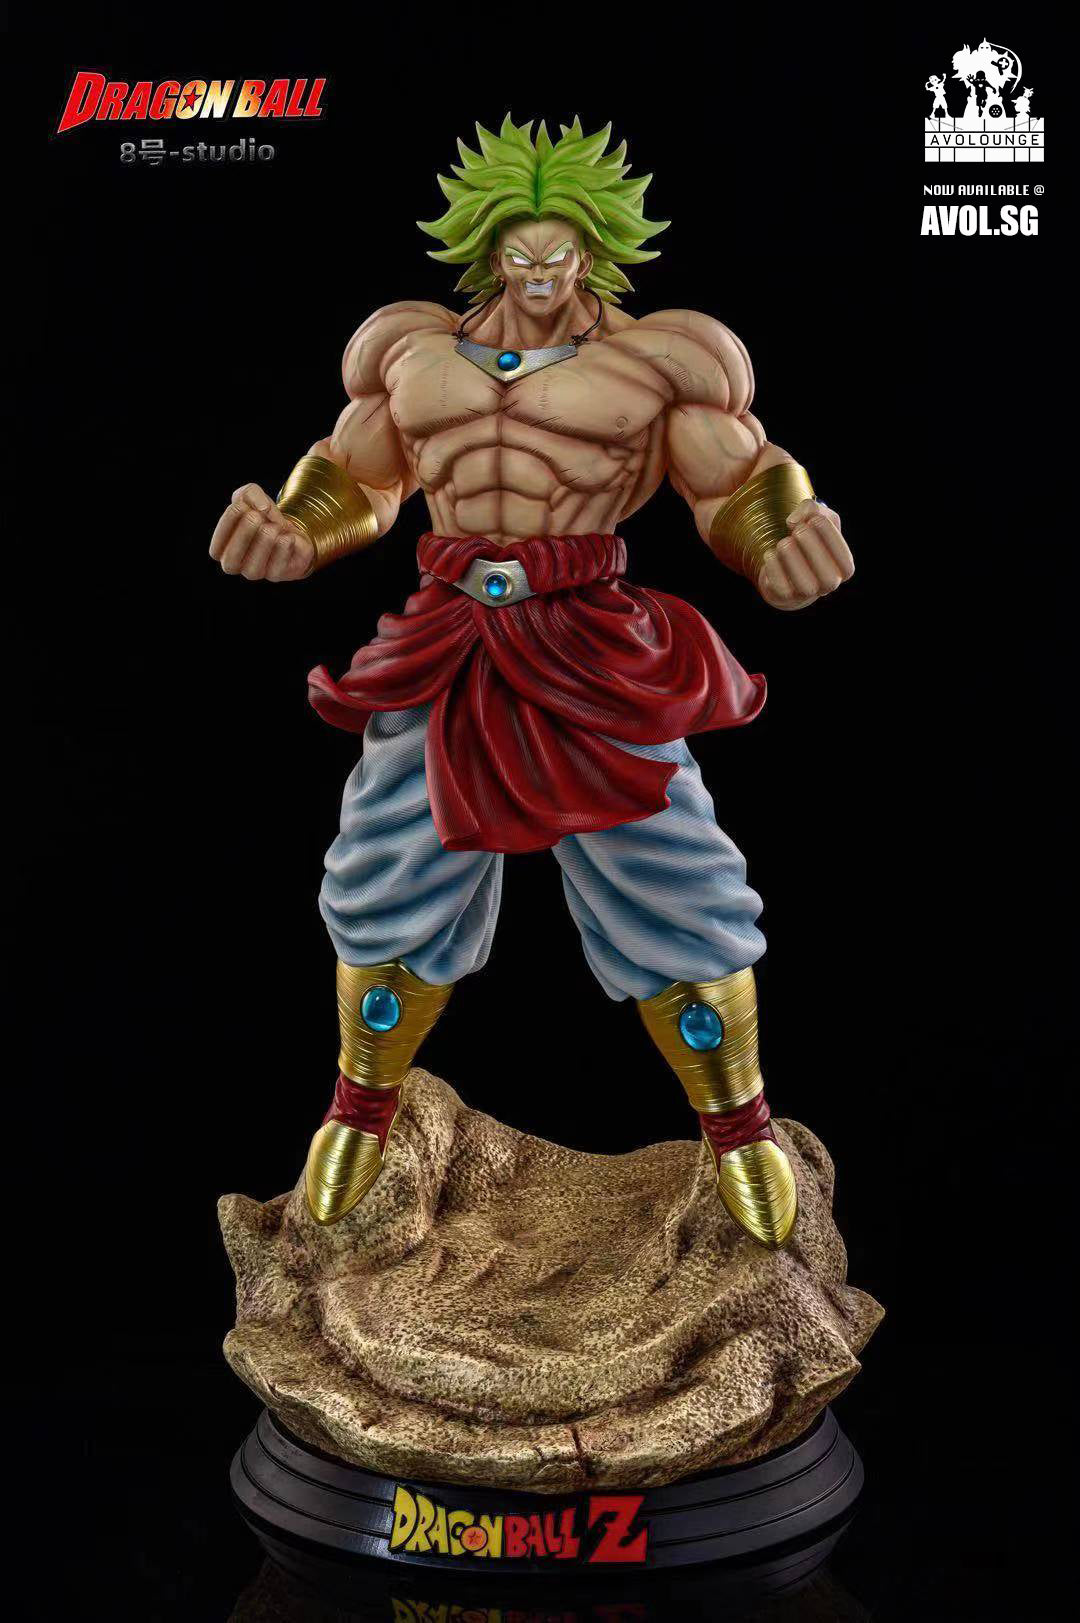 Number 8 Studio - Broly [1/4 scale and 1/1 scale]